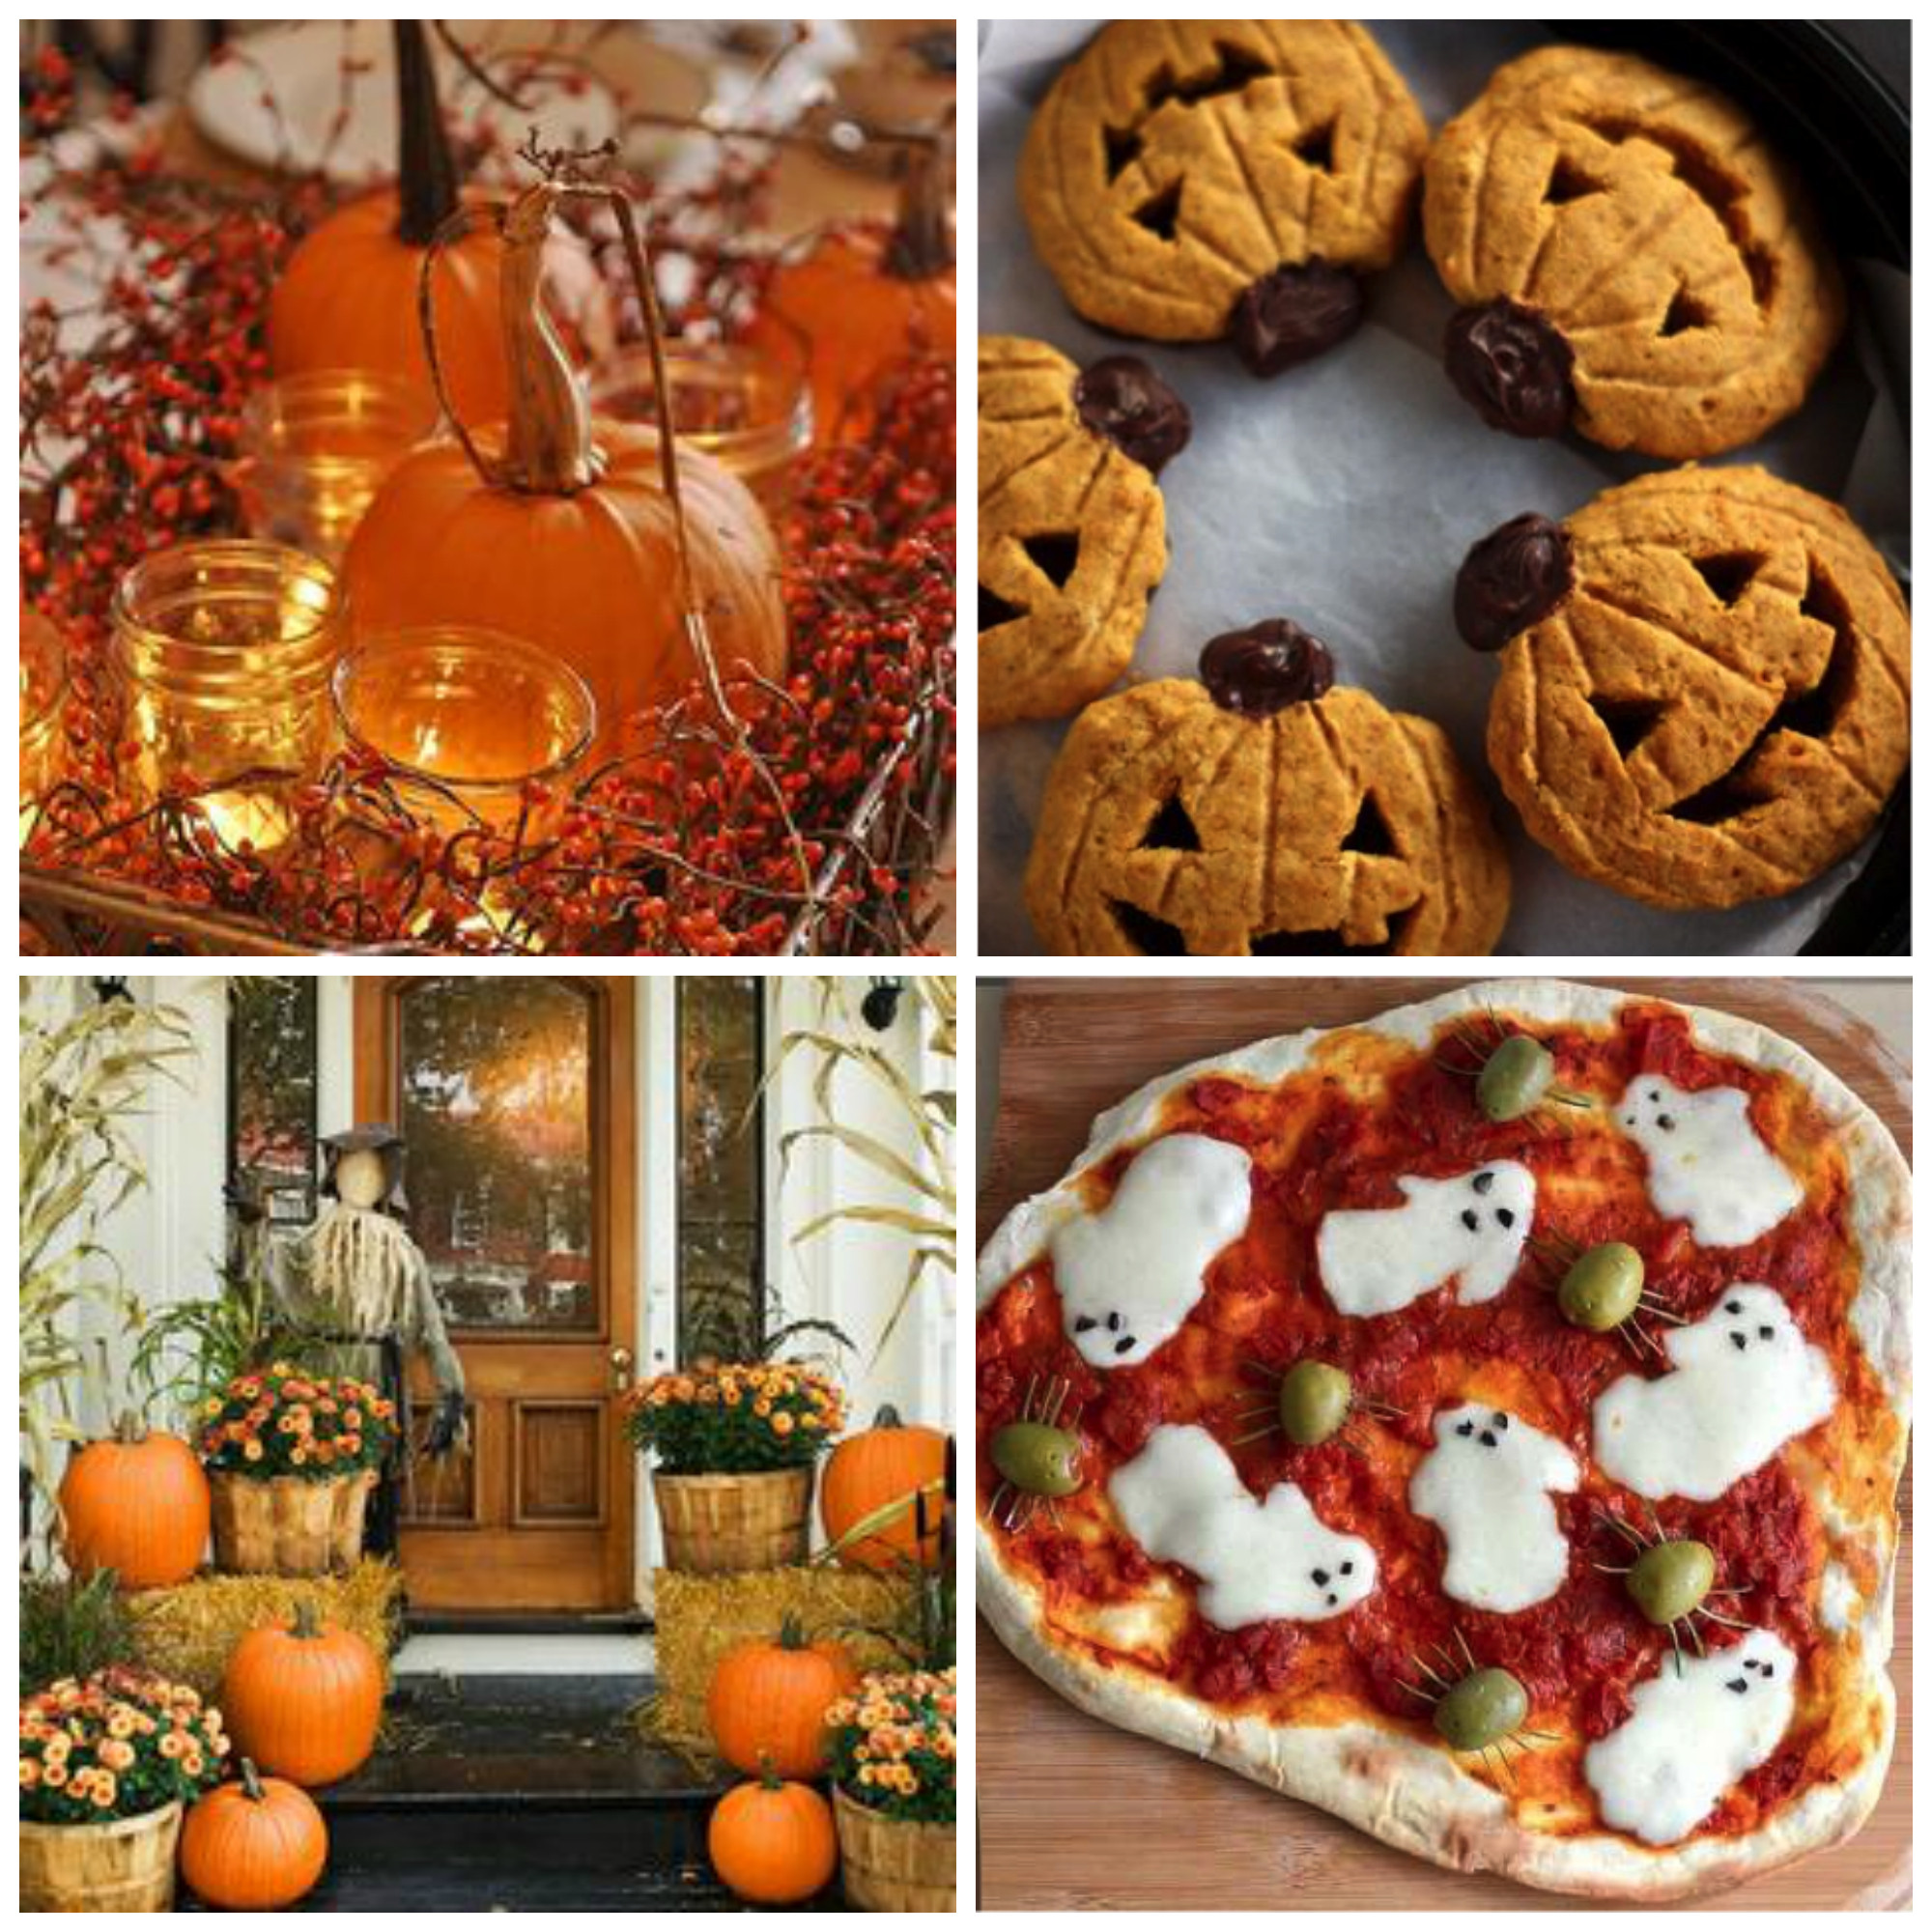 Halloween Dinner Ideas For Adults  Halloween with your wood fired oven The Stone Bake Oven